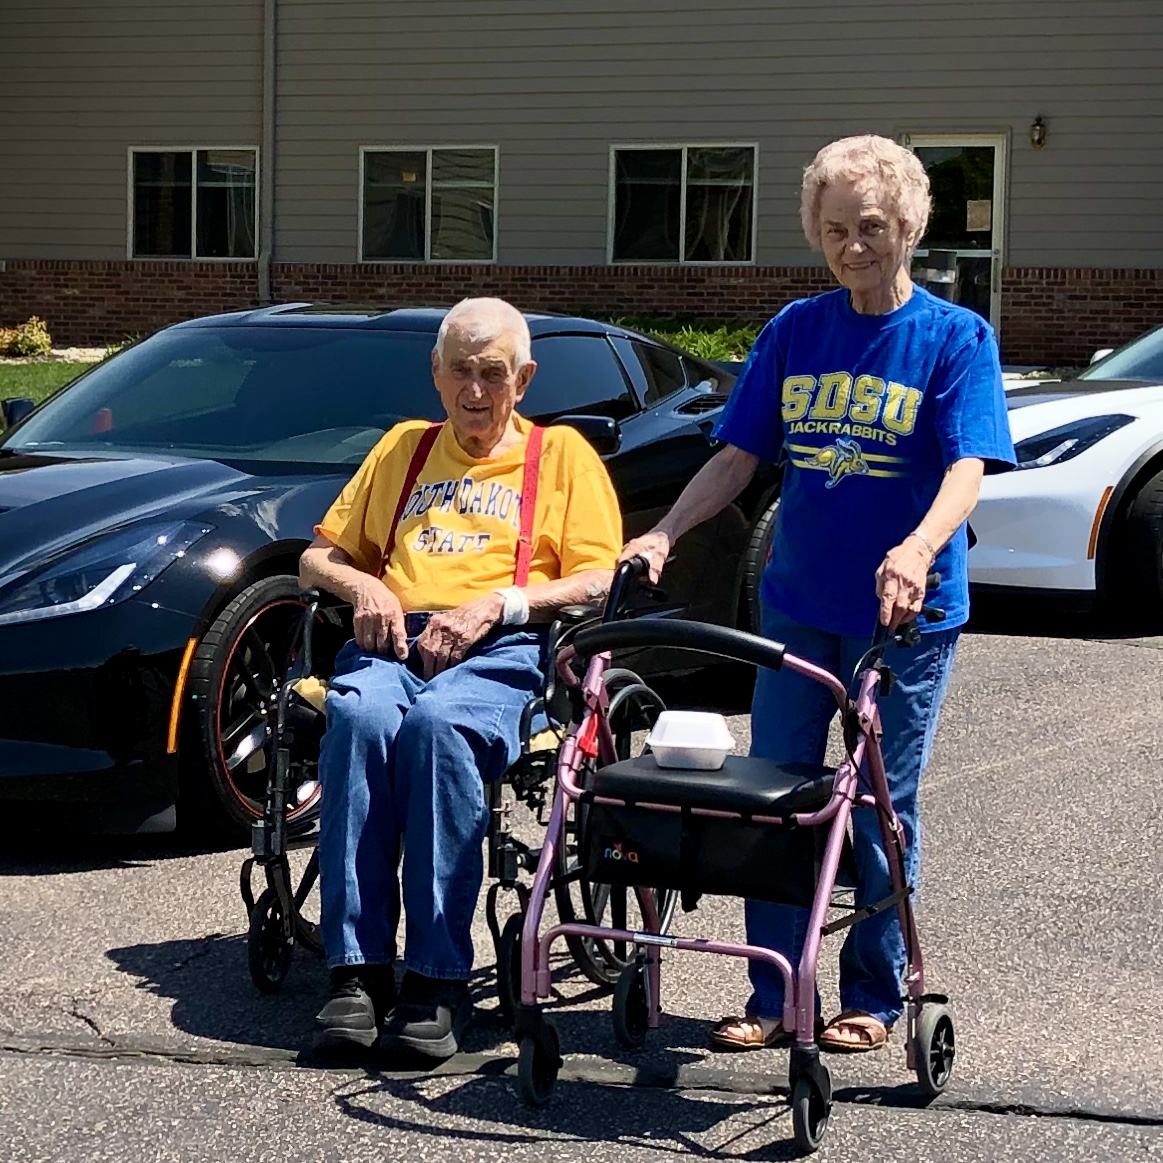 Residents enjoying the warm weather and the corvette's